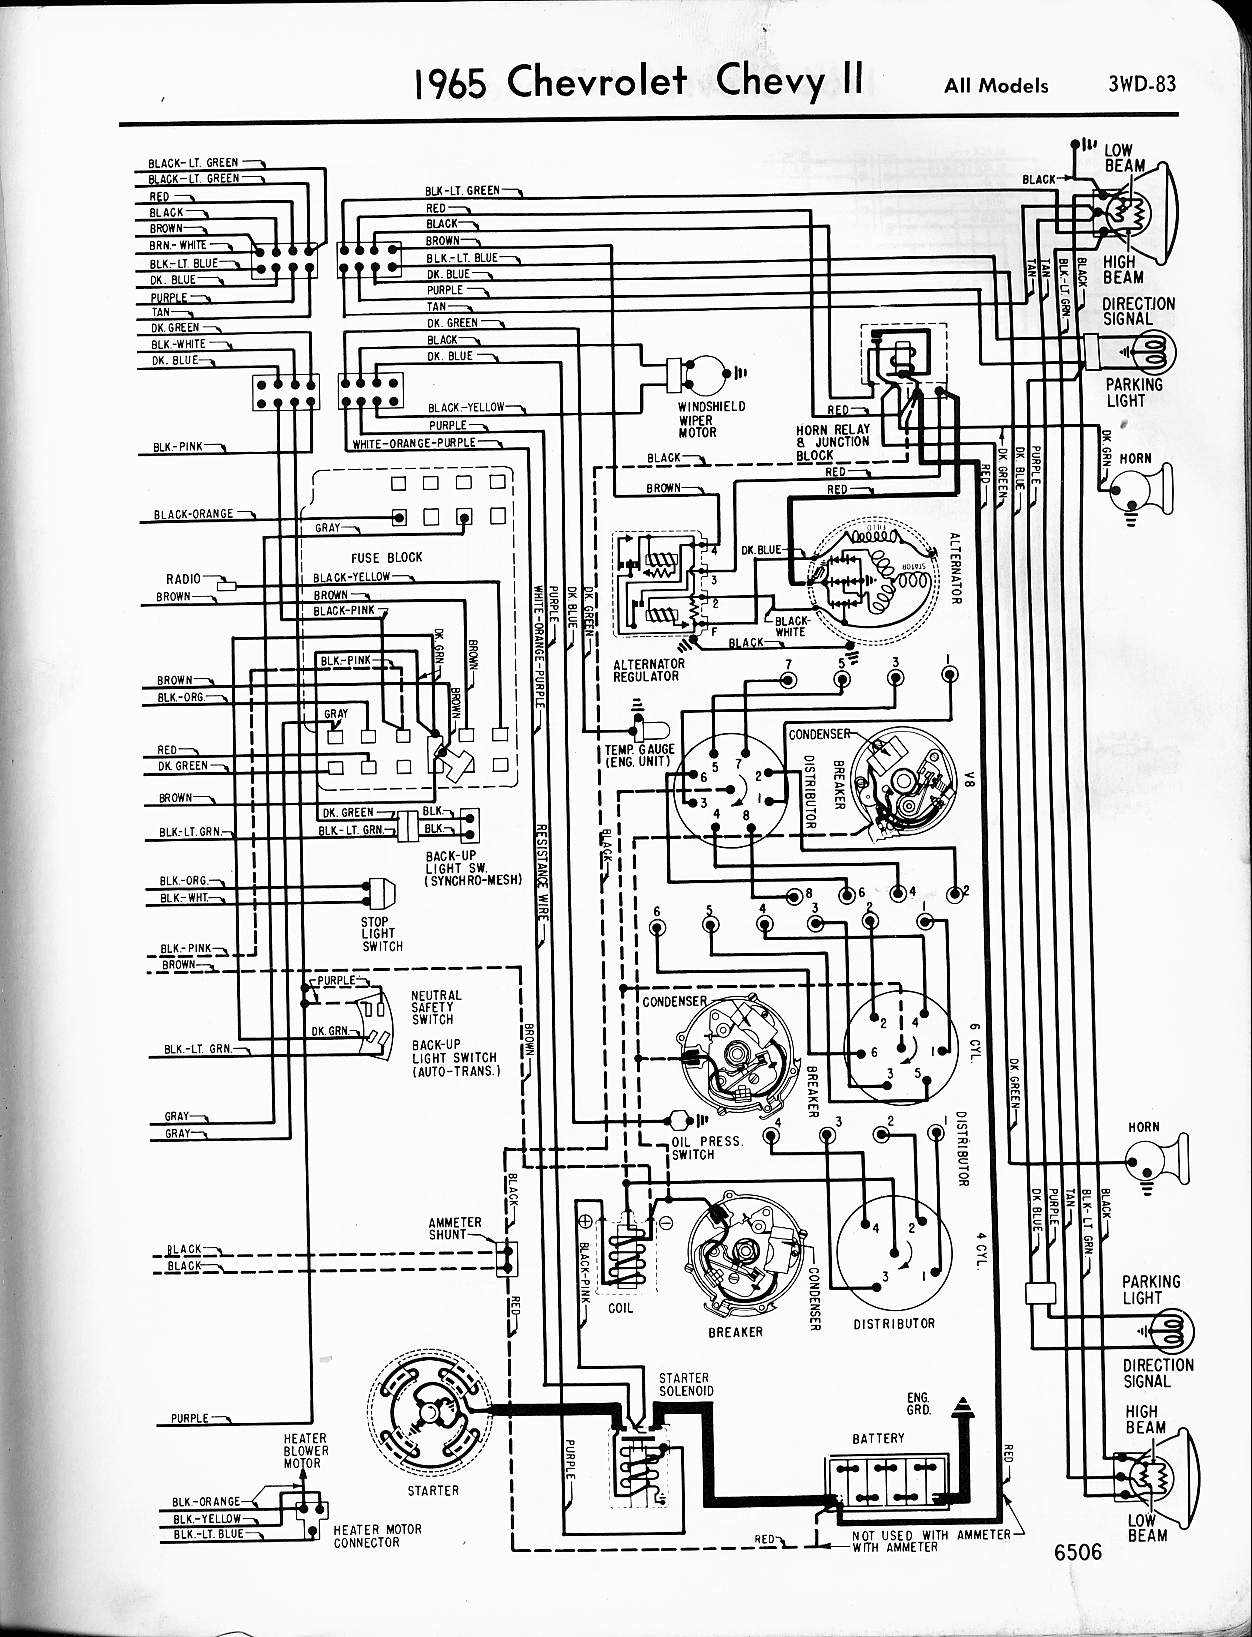 MWireChev65_3WD 083 57 65 chevy wiring diagrams 1965 C10 Wiring-Diagram at alyssarenee.co